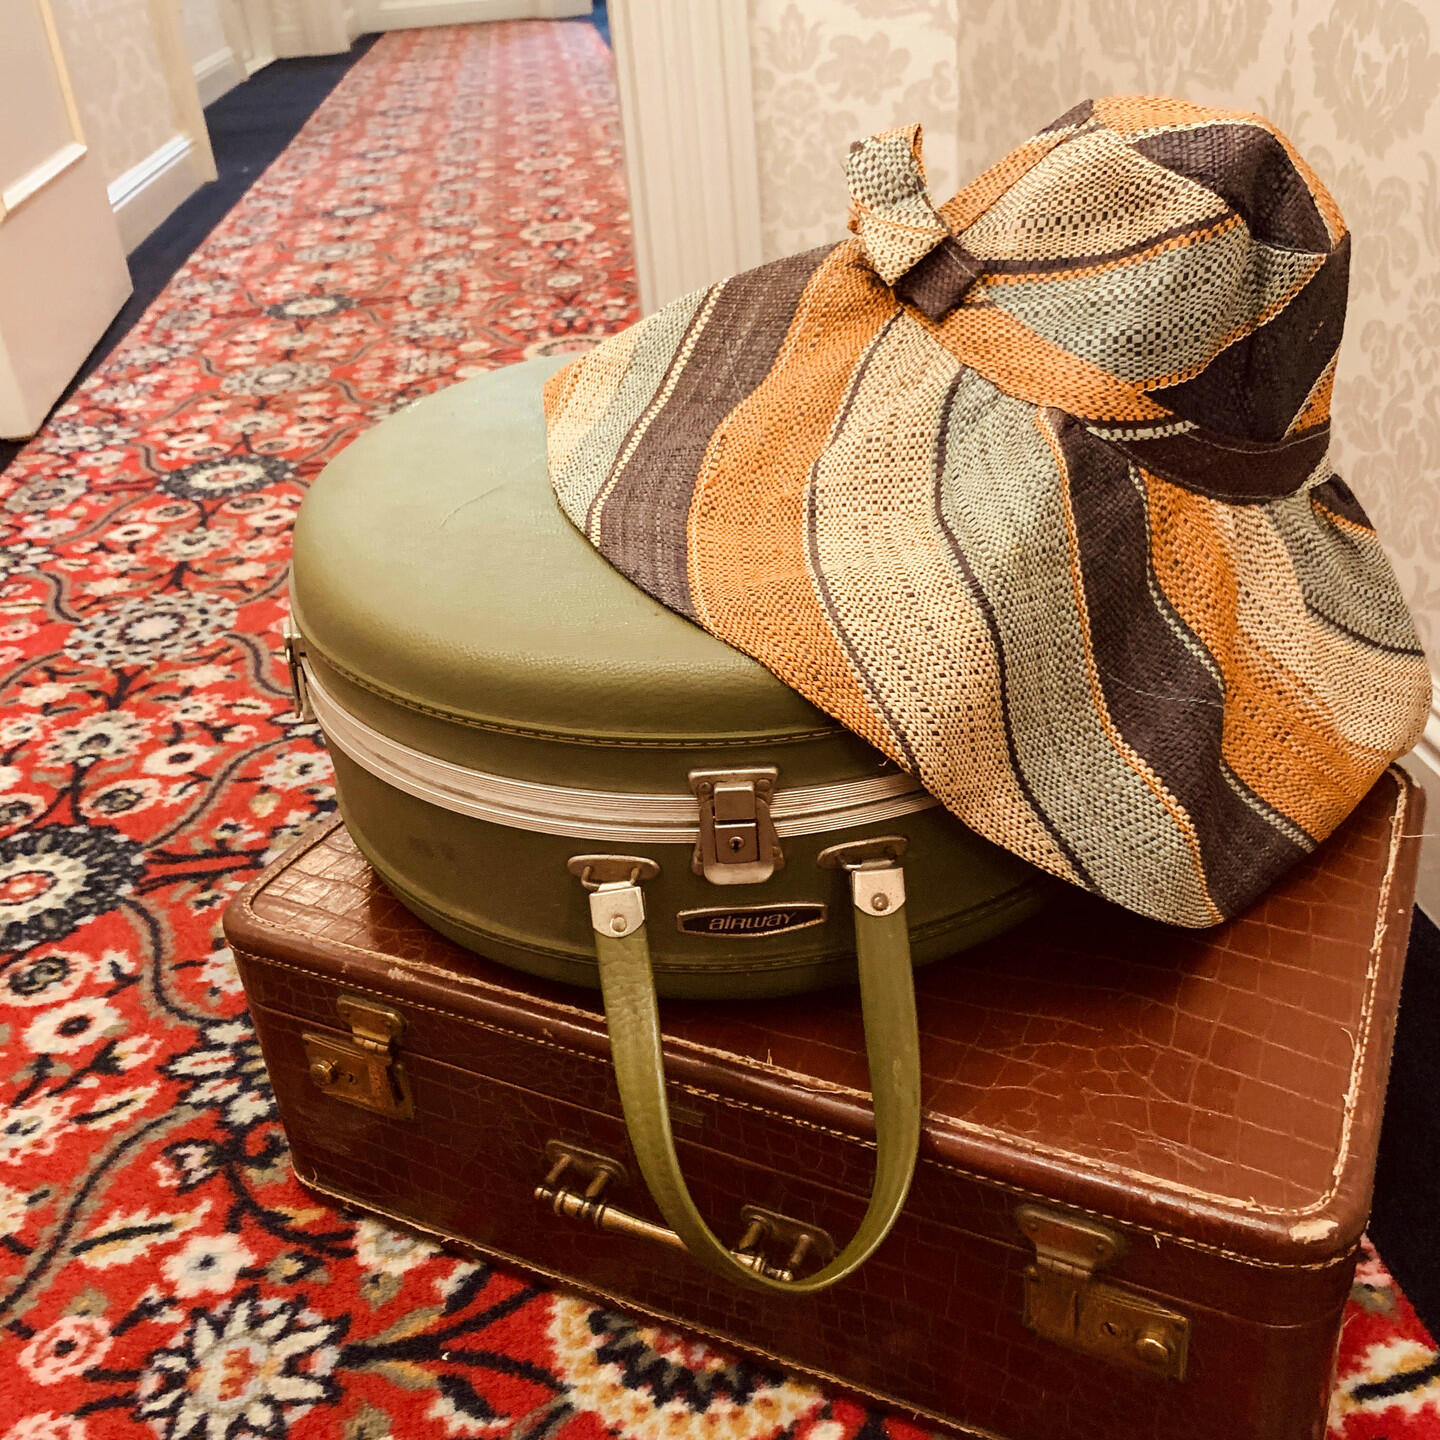 two suite cases and a hat